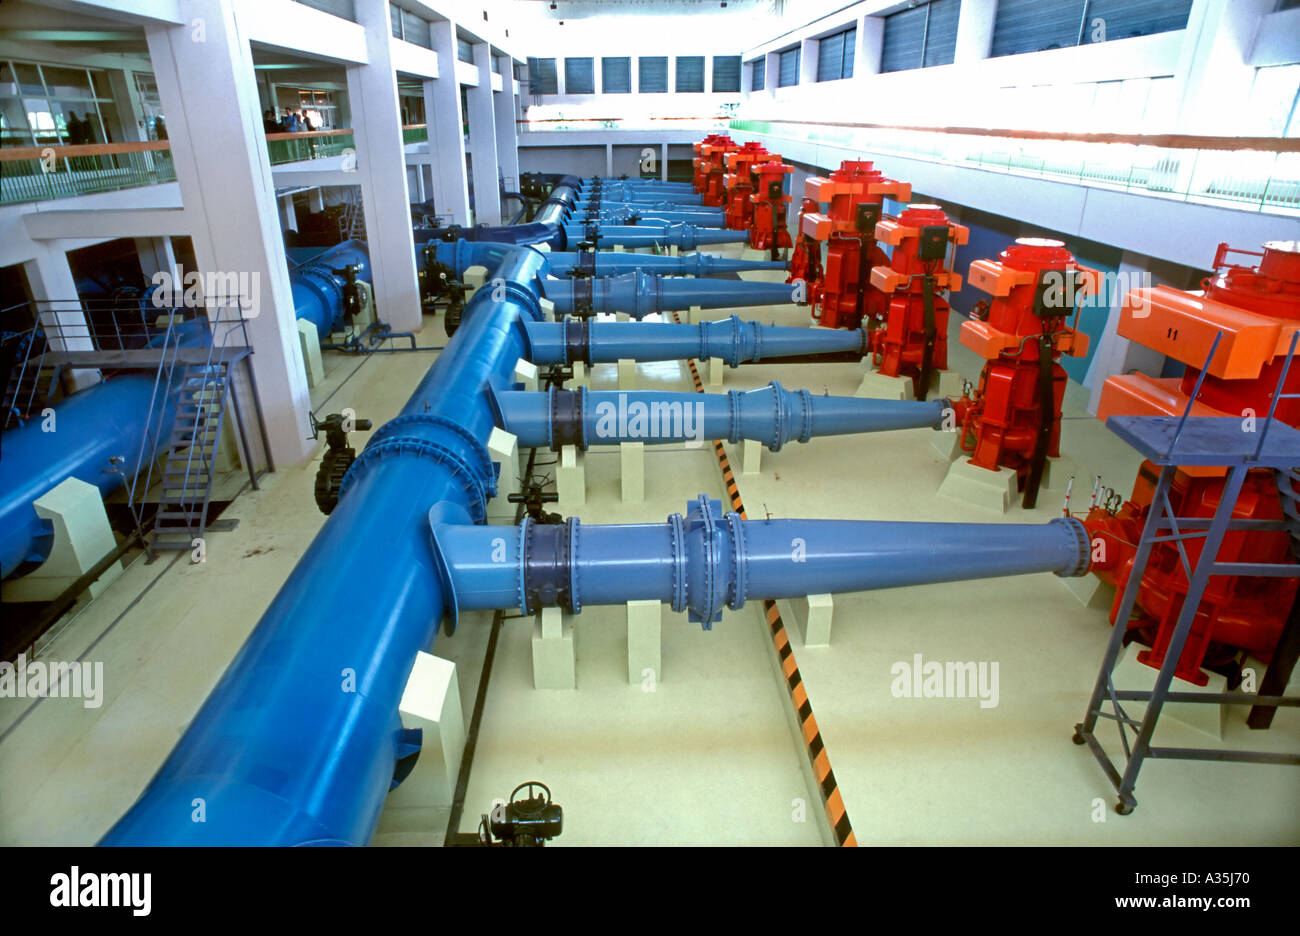 Lyon FRANCE, Clean Water Treatment Plant  Veolia Water Company,  at Villeurban Pumping Station, Inside Pipes - Stock Image